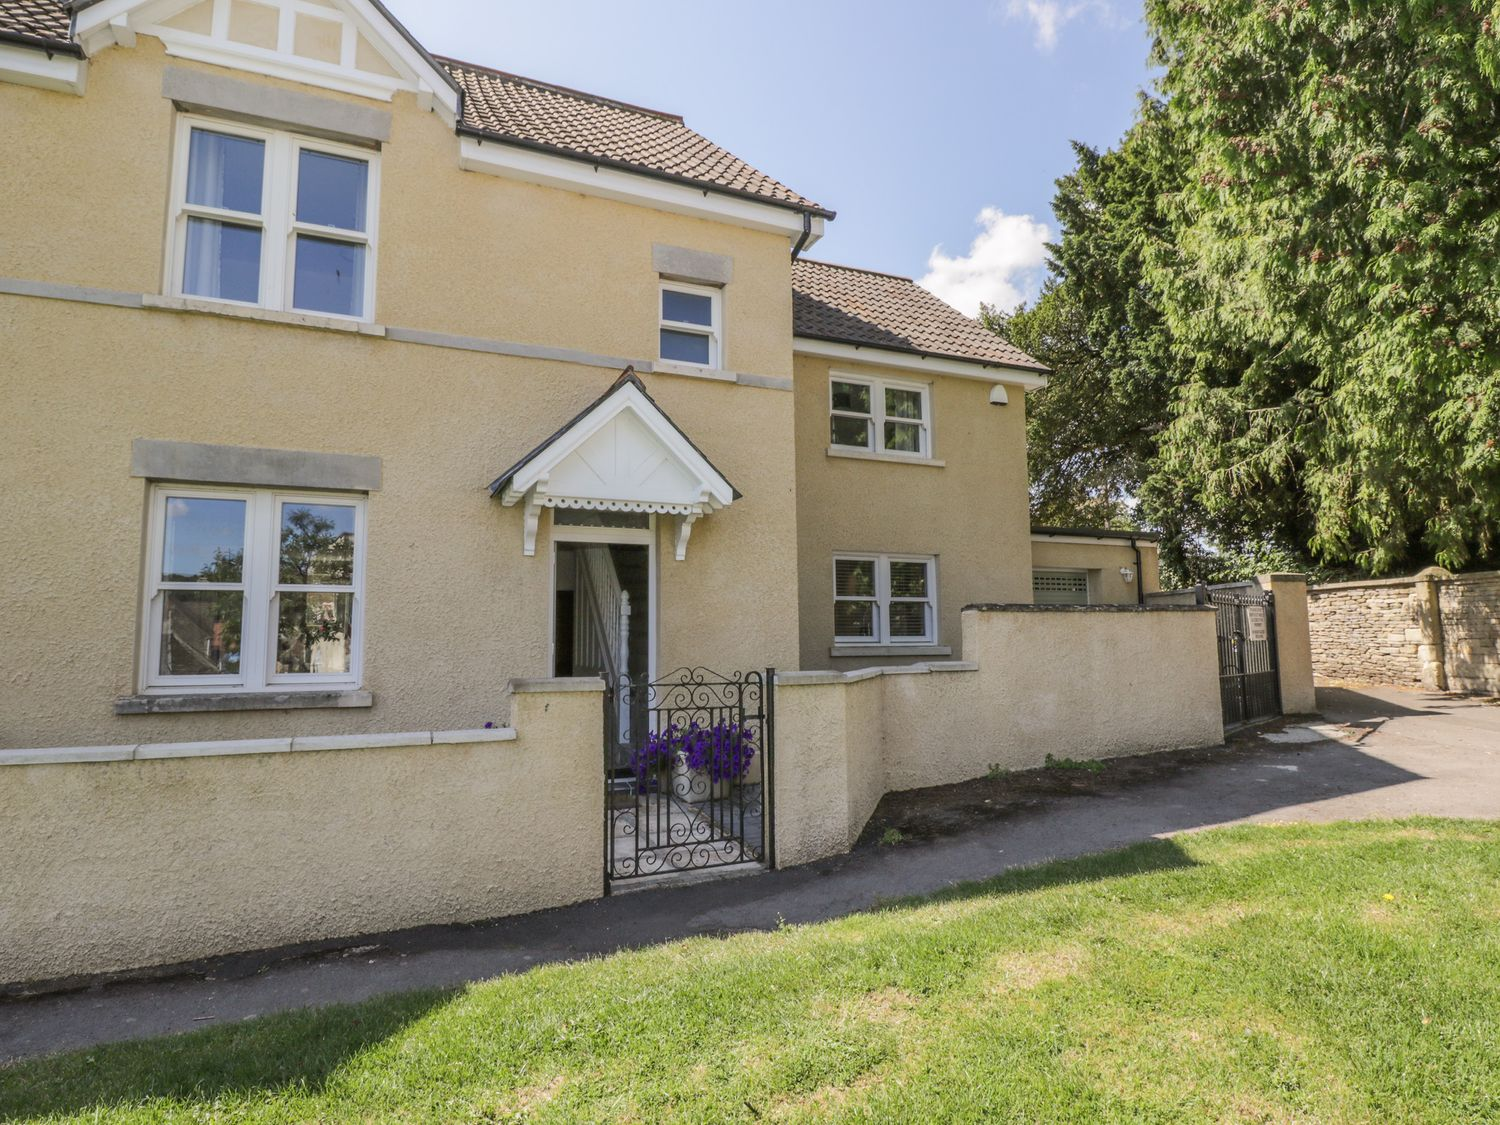 6 The Chipping - Cotswolds - 992408 - photo 1